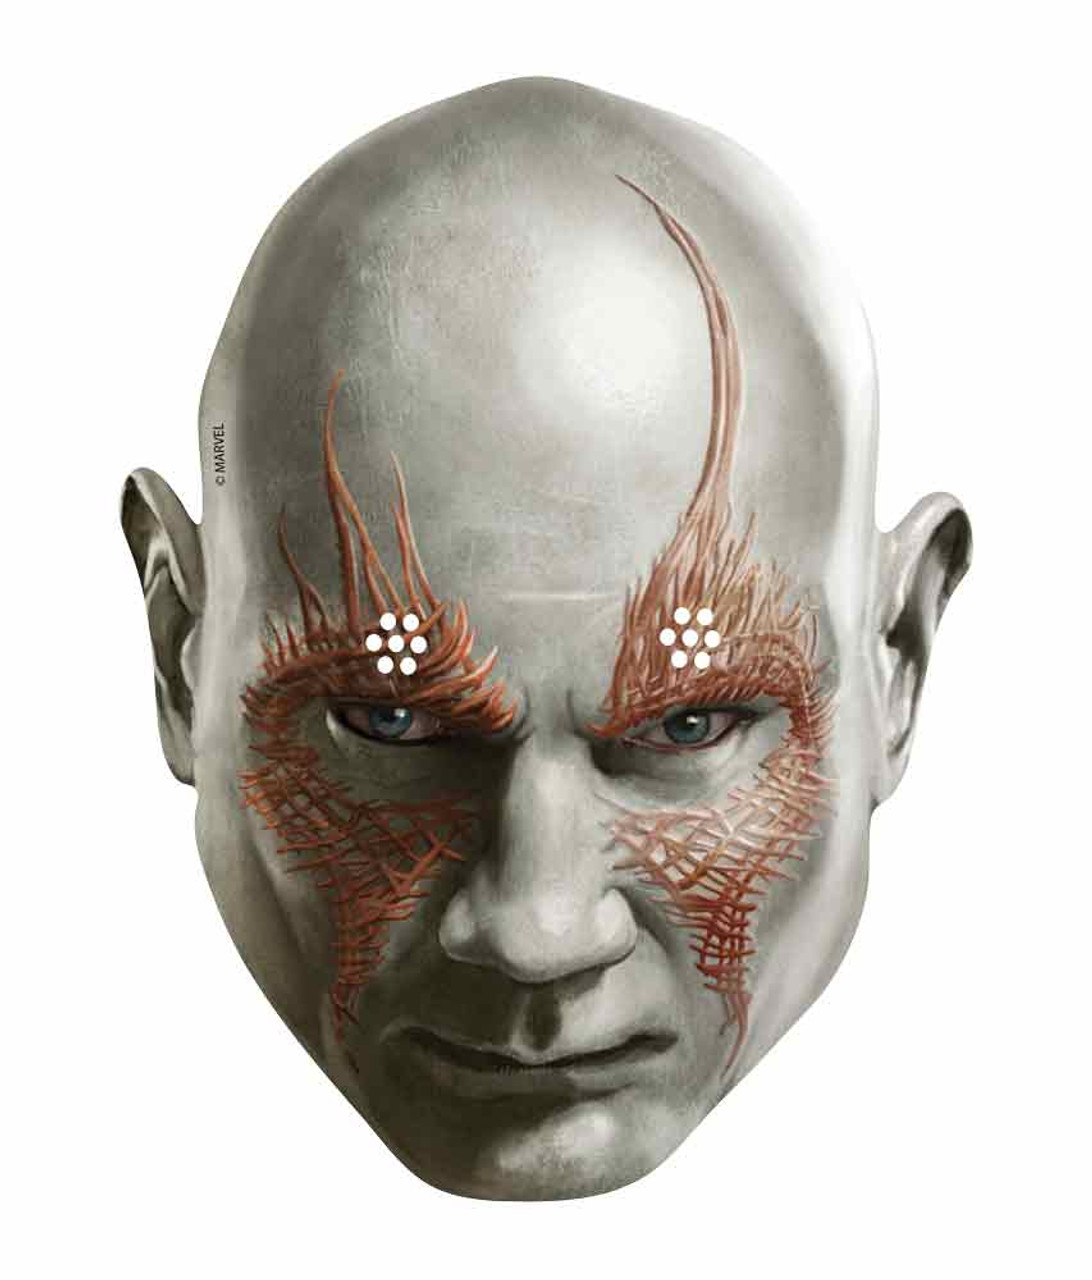 271ed2a8d53 Drax the Destroyer Marvel Guardians of the Galaxy Card Face Mask ...